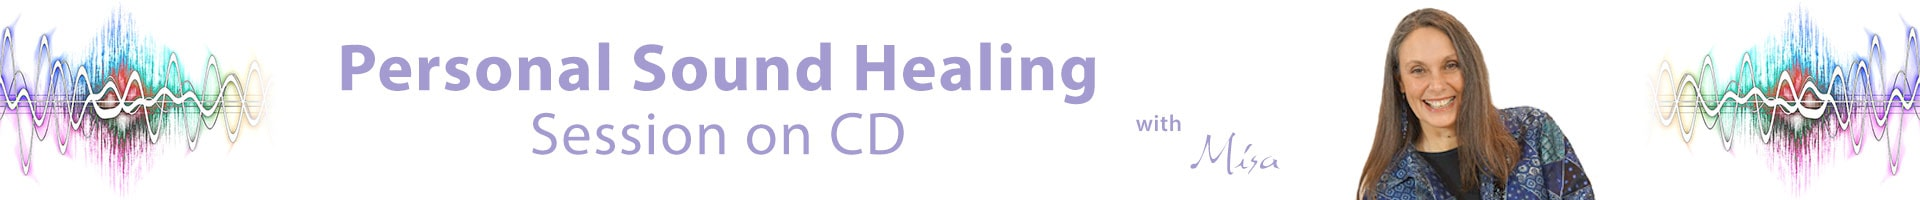 Sound-Healing-Personal-CD-page-banner-v1